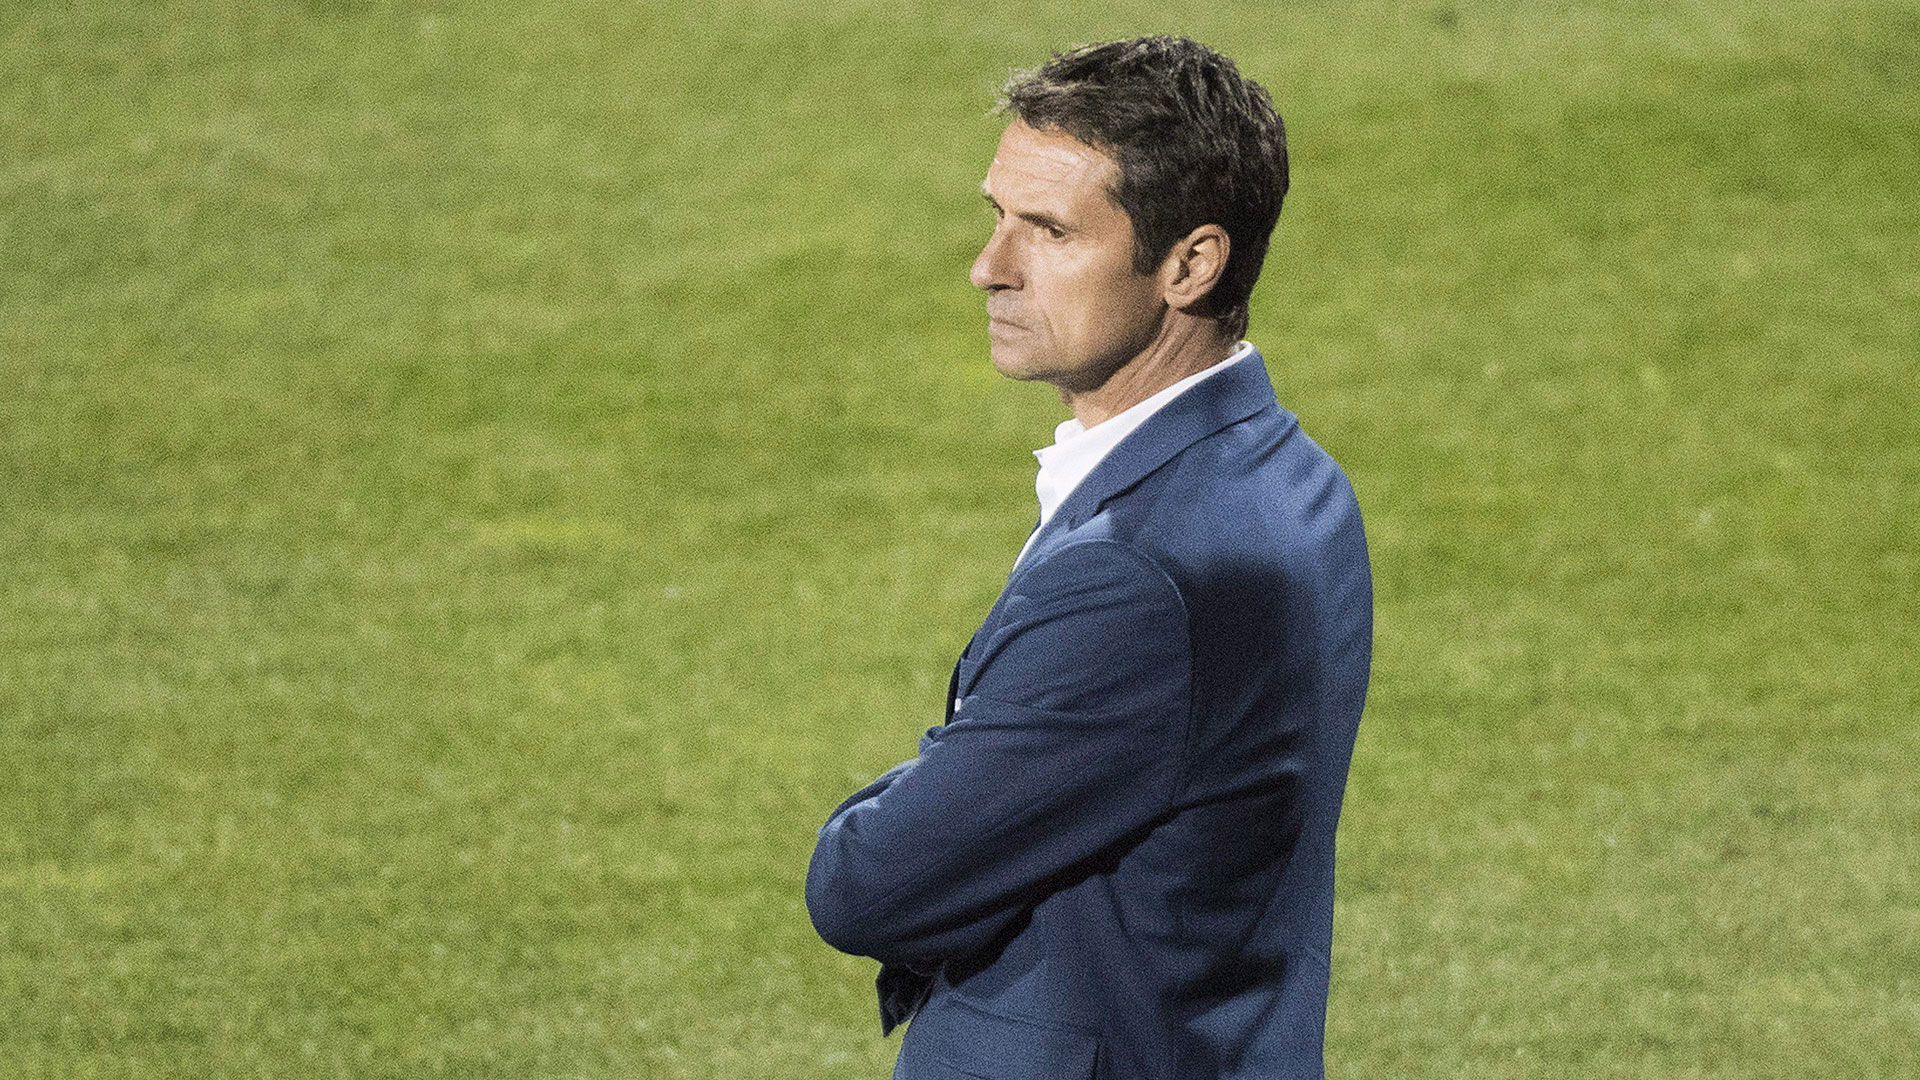 Impact fire head coach Garde; hire Cabrera